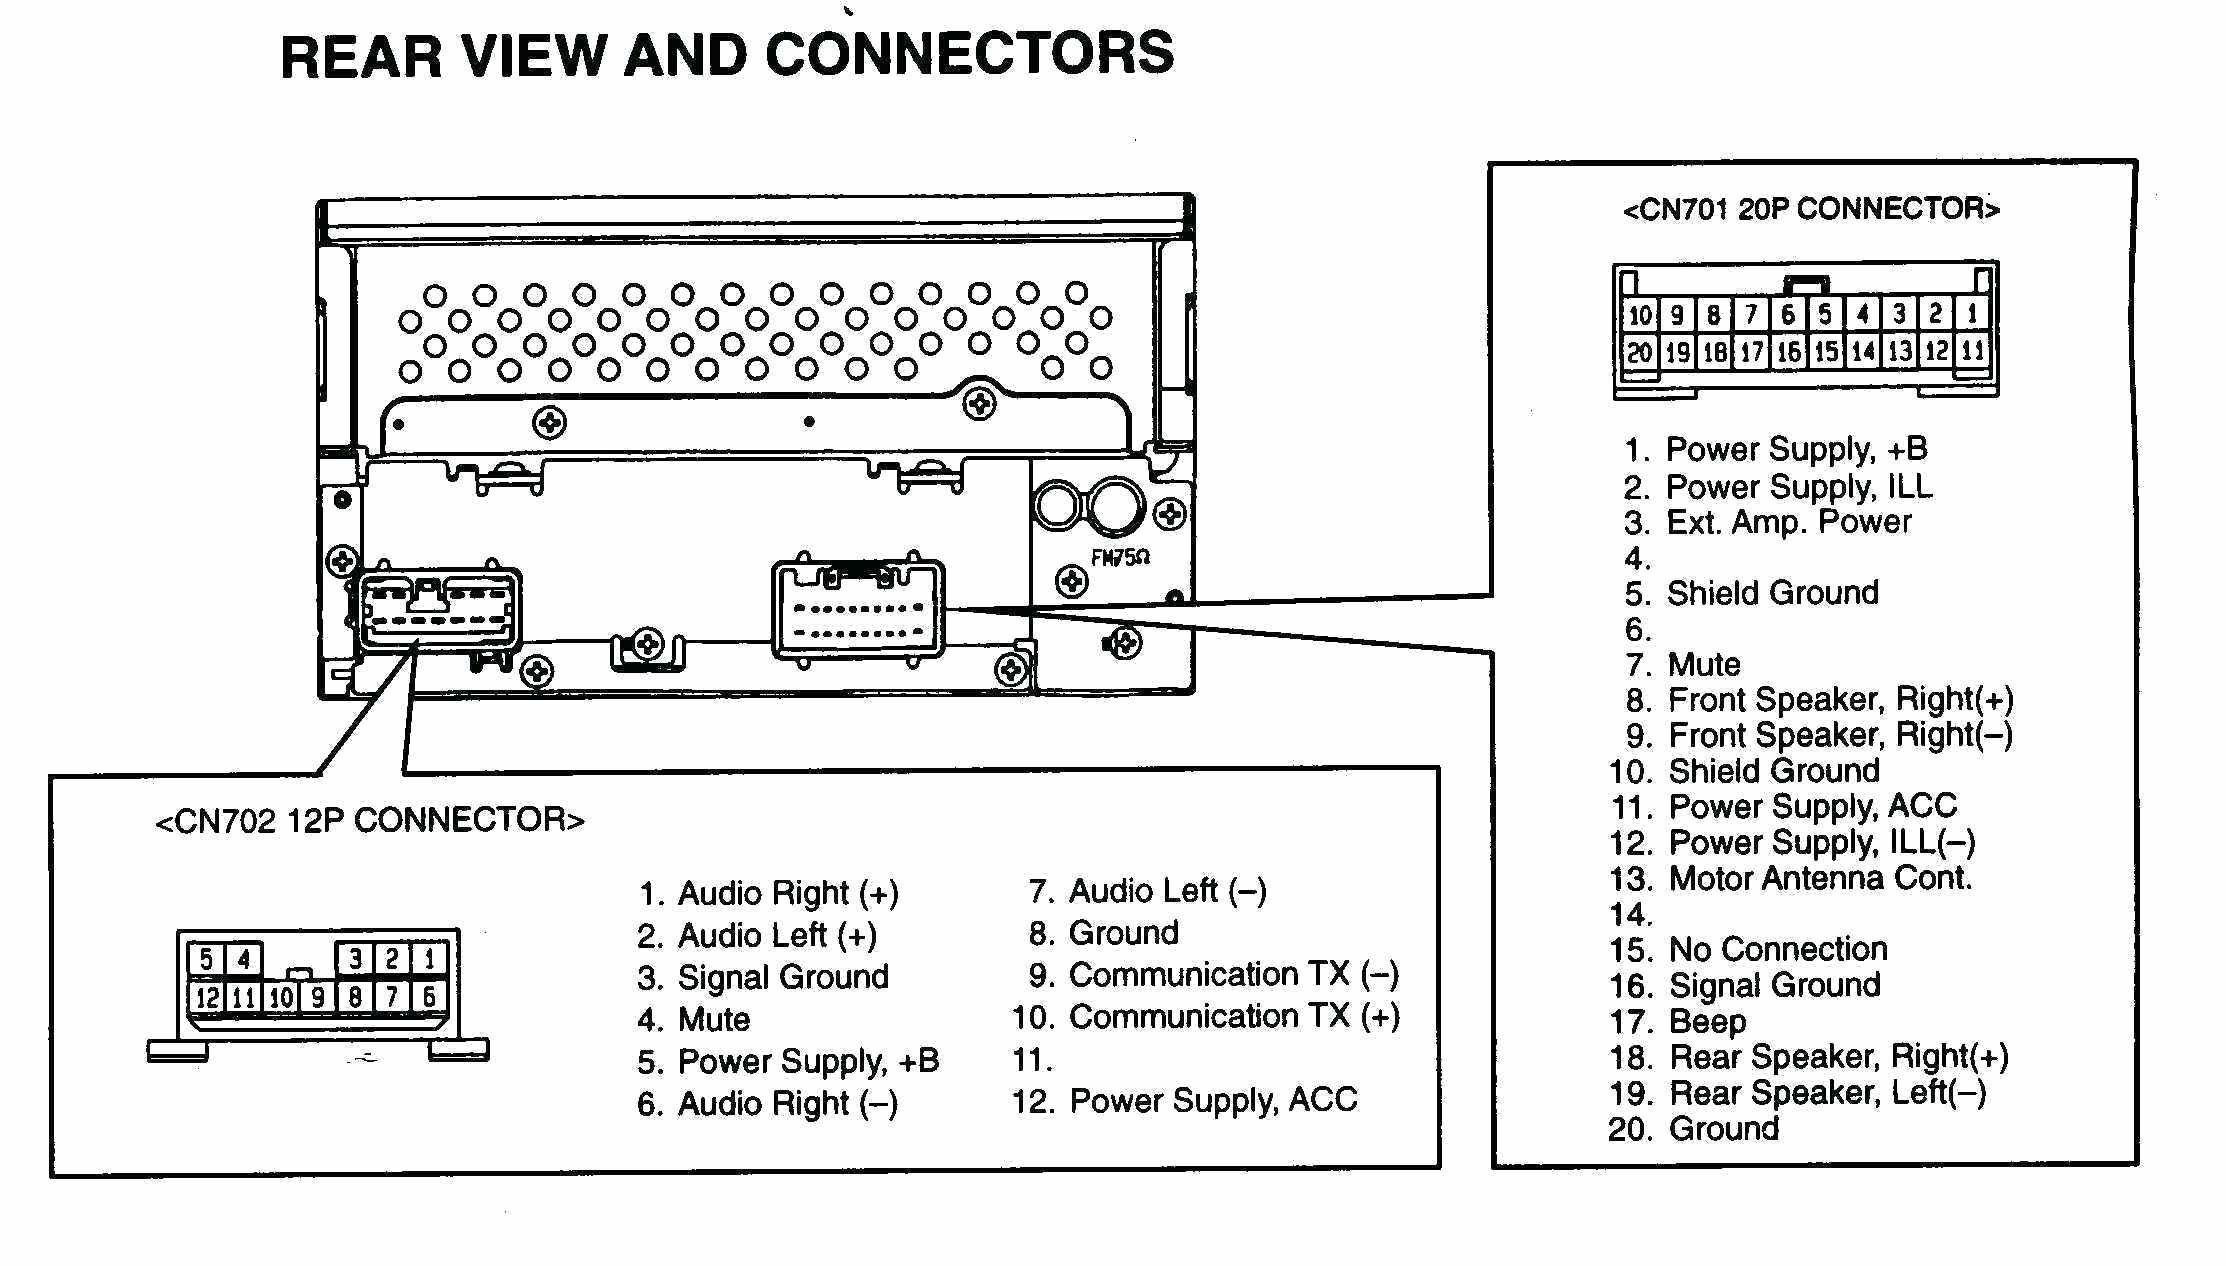 Car Stereo Wire Diagram In 2021 Car Stereo Wiring Diagram Wiring Diagram Car Stereo